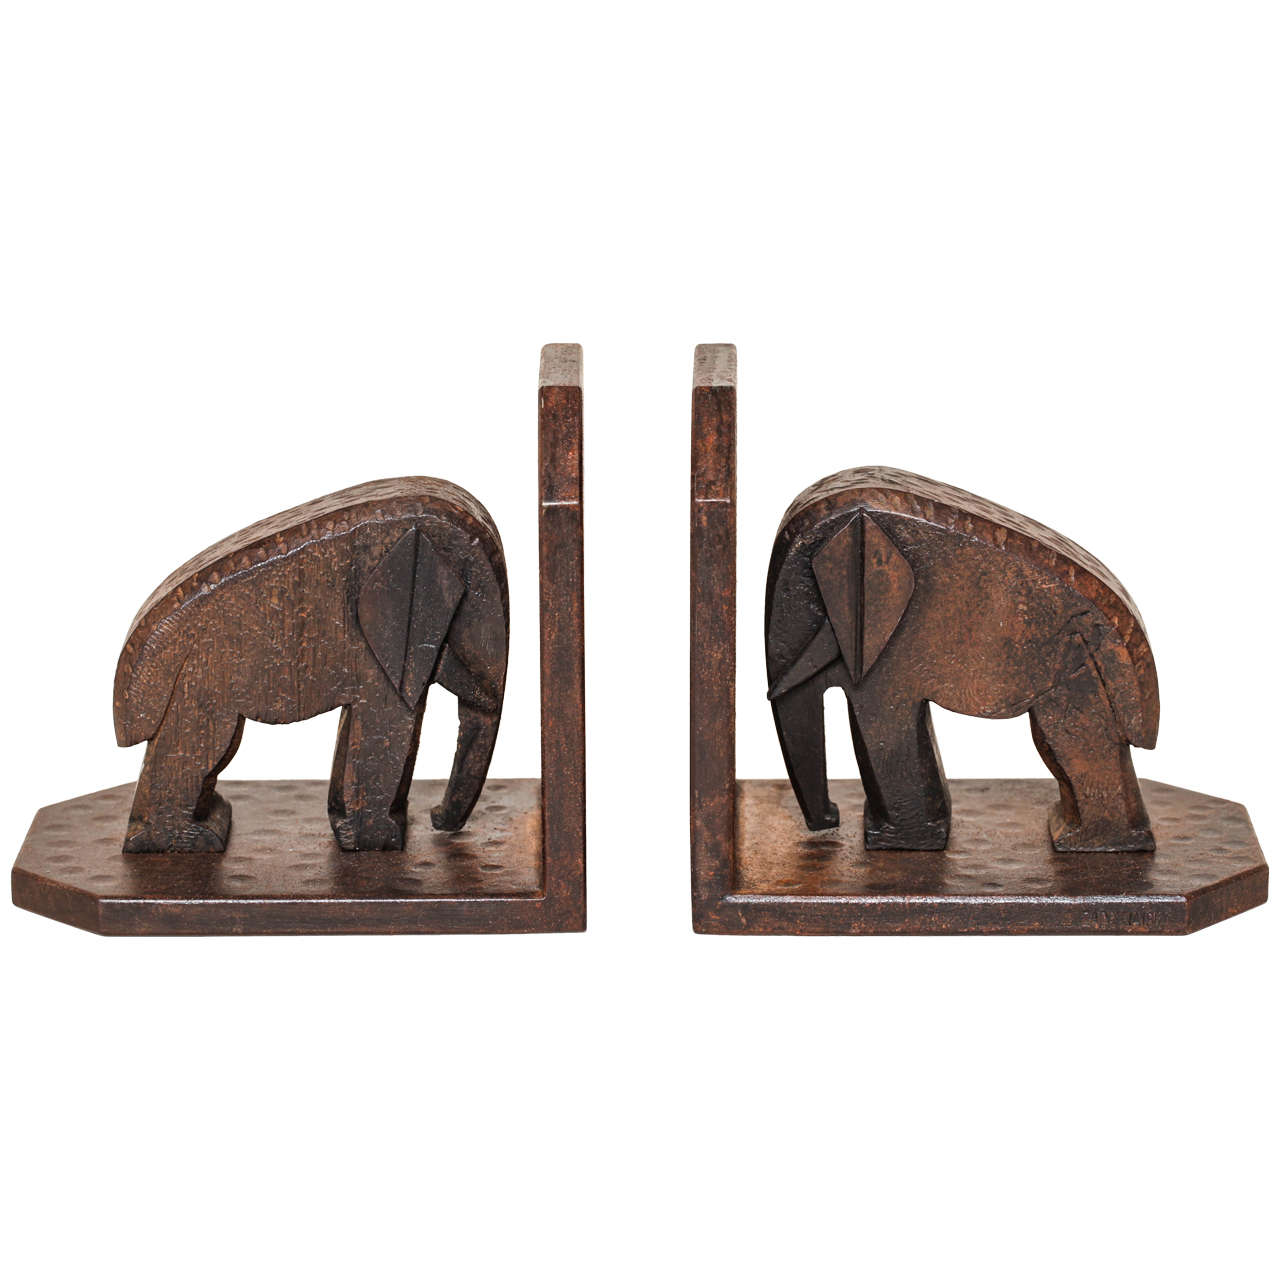 michel zadounaisky french art deco wrought iron elephant bookends for sale at 1stdibs. Black Bedroom Furniture Sets. Home Design Ideas